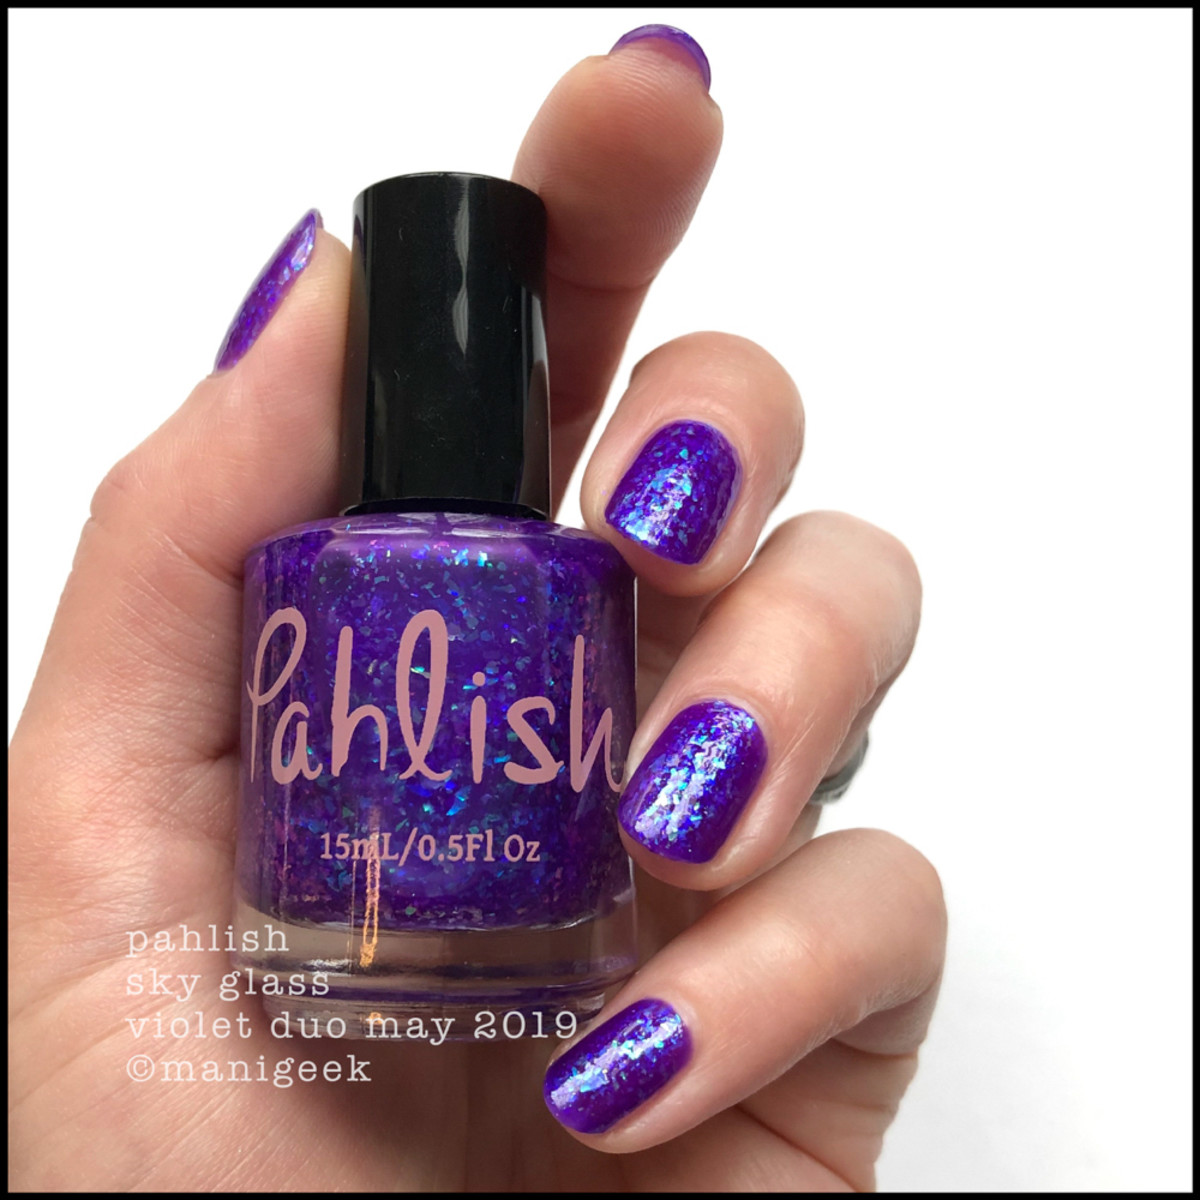 Pahlish Sky Glass - Pahlish Violet Duo May 2019